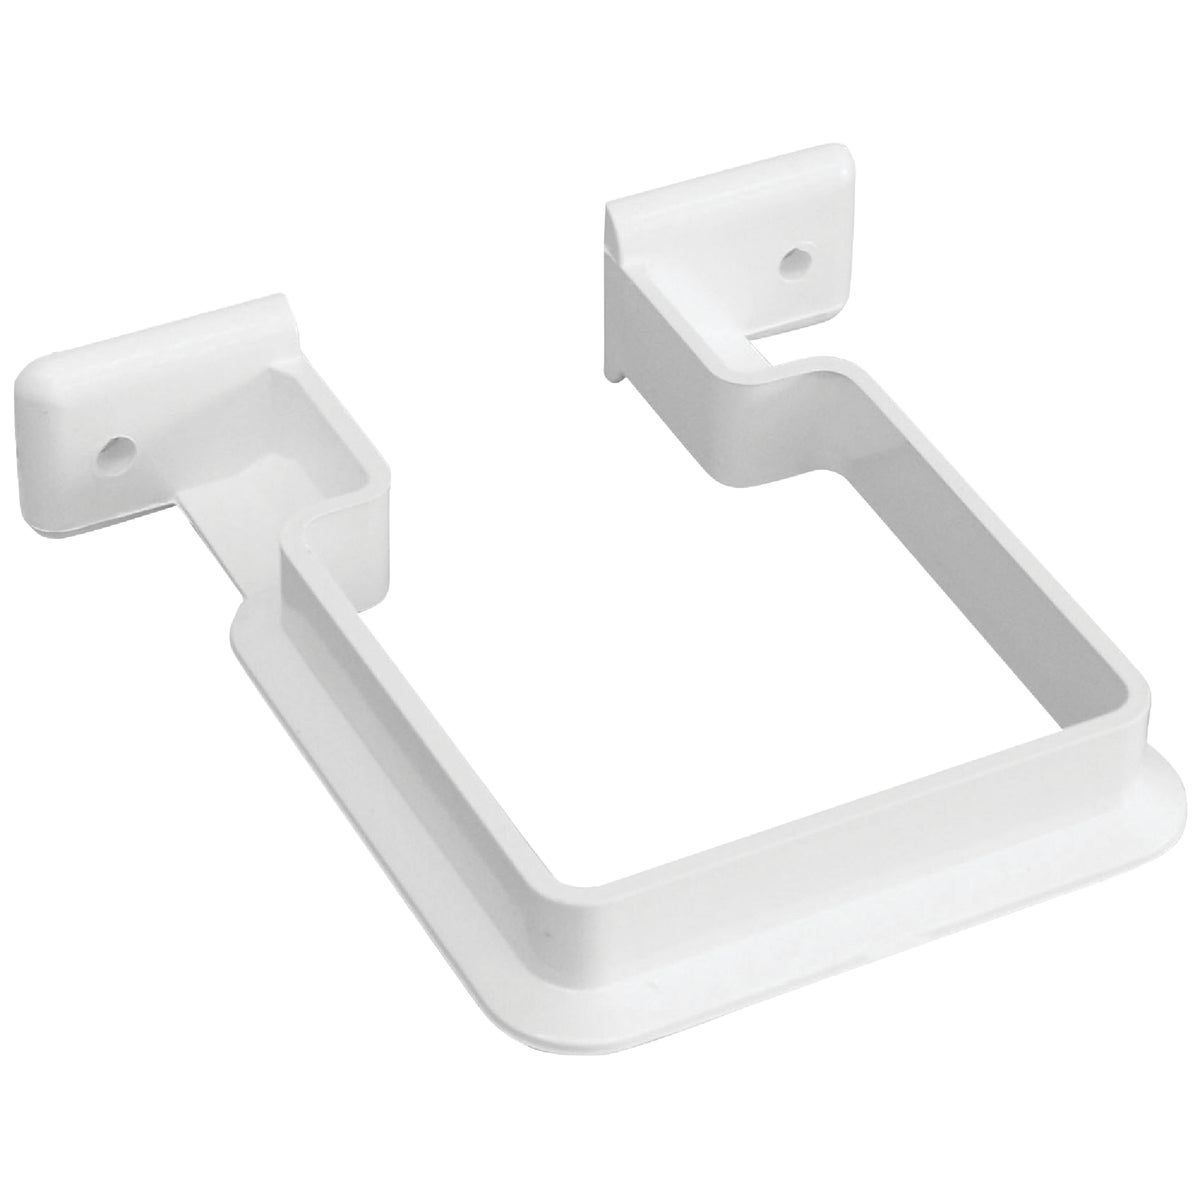 WHT DOWNSPOUT BRACKET - RW202 by Genova Products